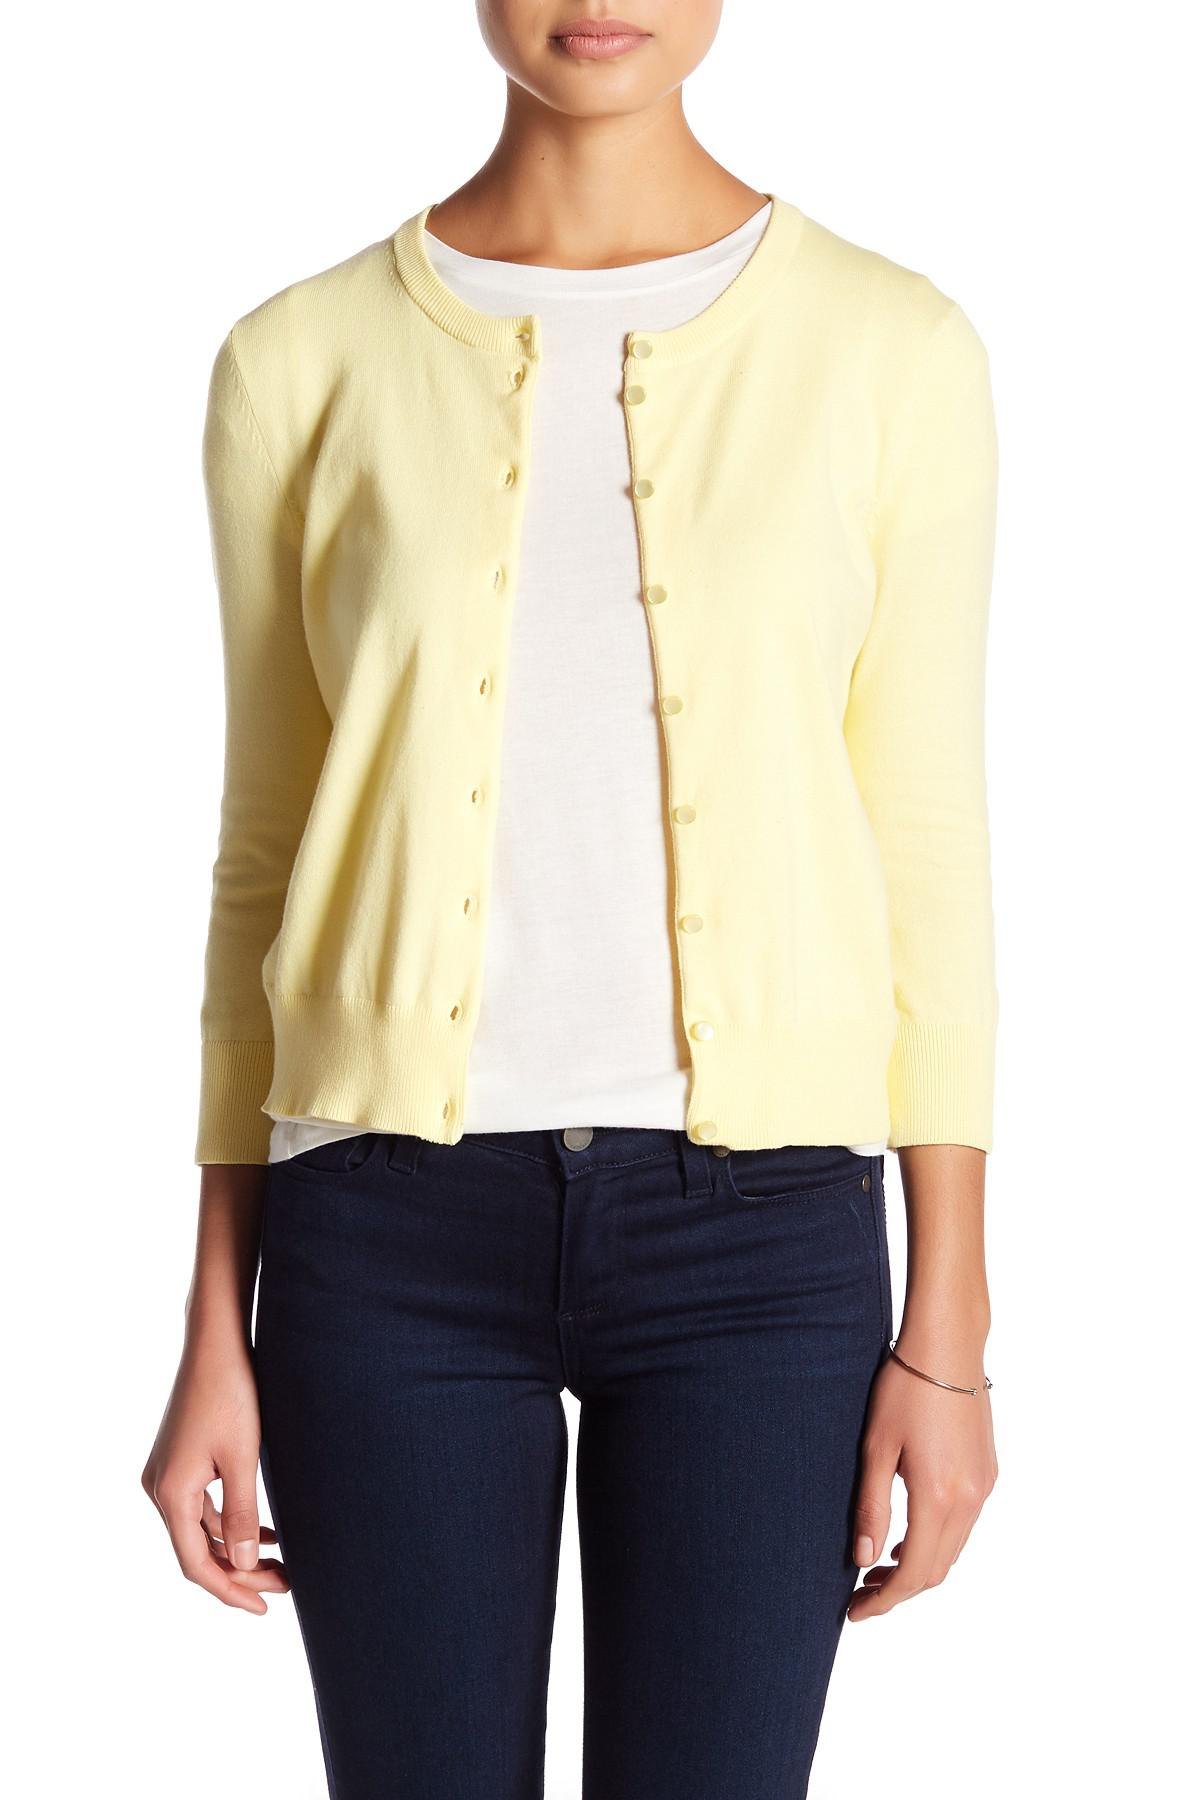 Cable & gauge Crew Cardigan (petite) in Yellow   Lyst